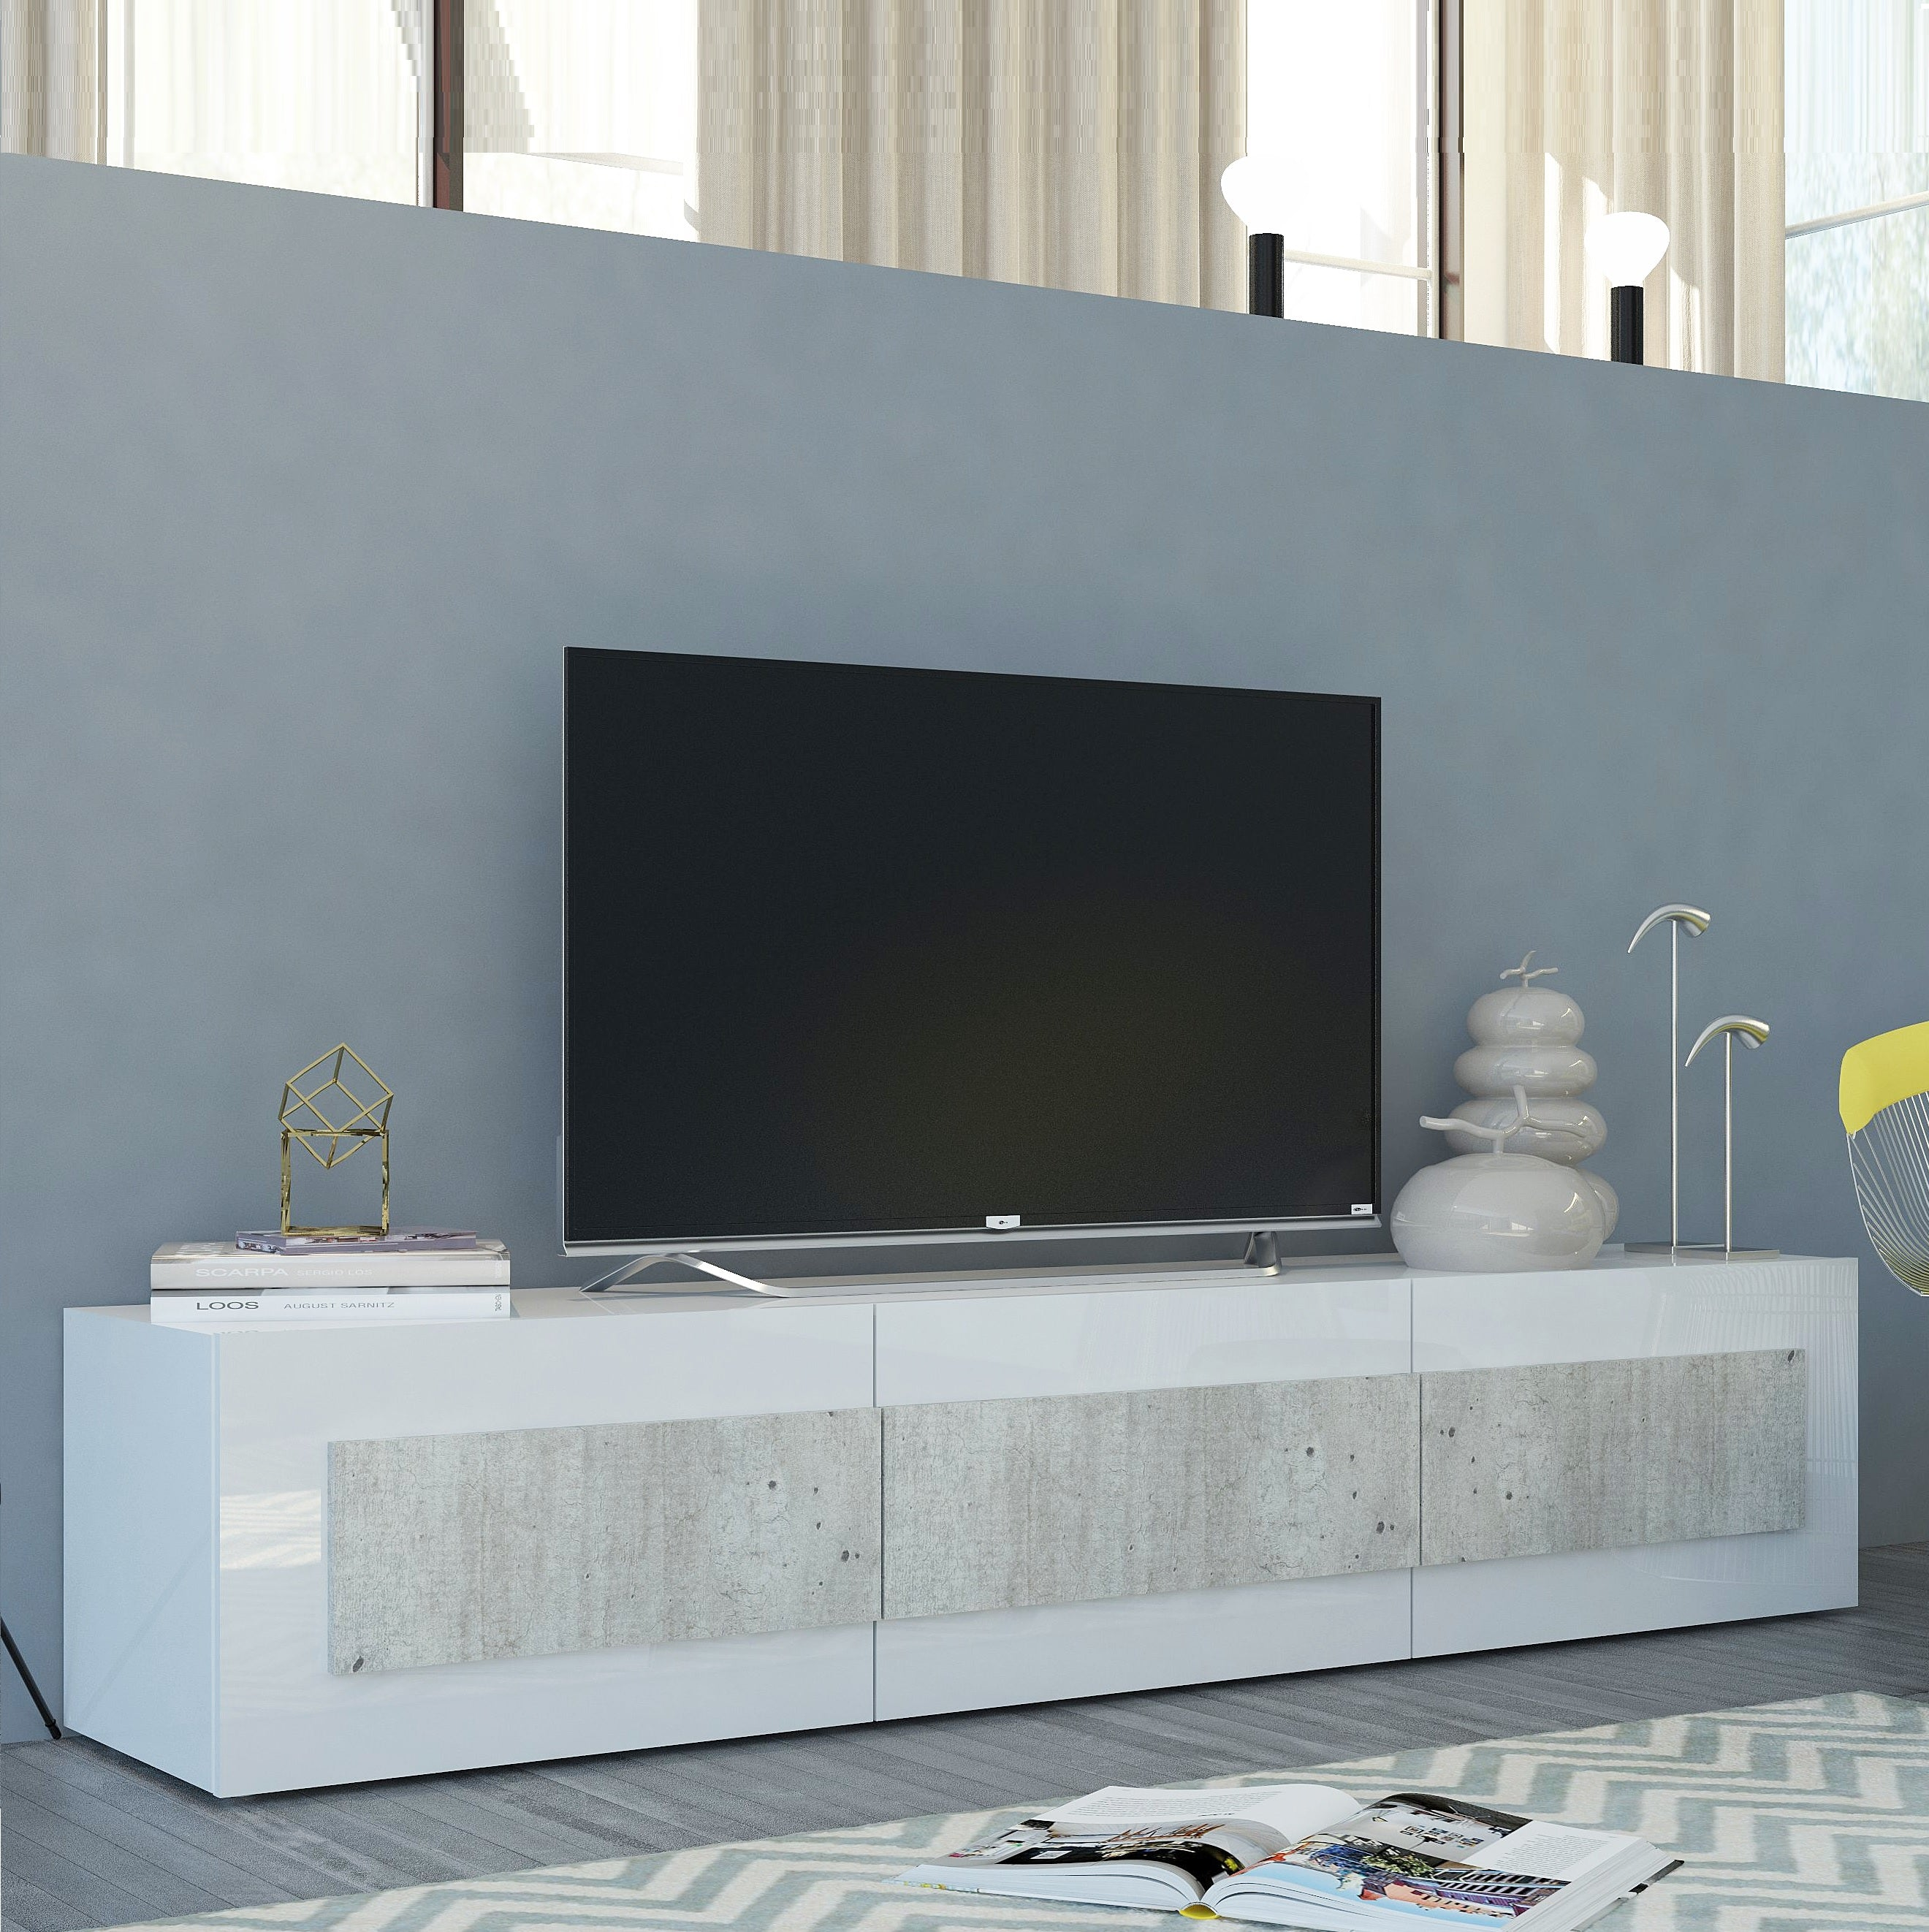 ORIZZONTI Modern Cement Finish TV Stand